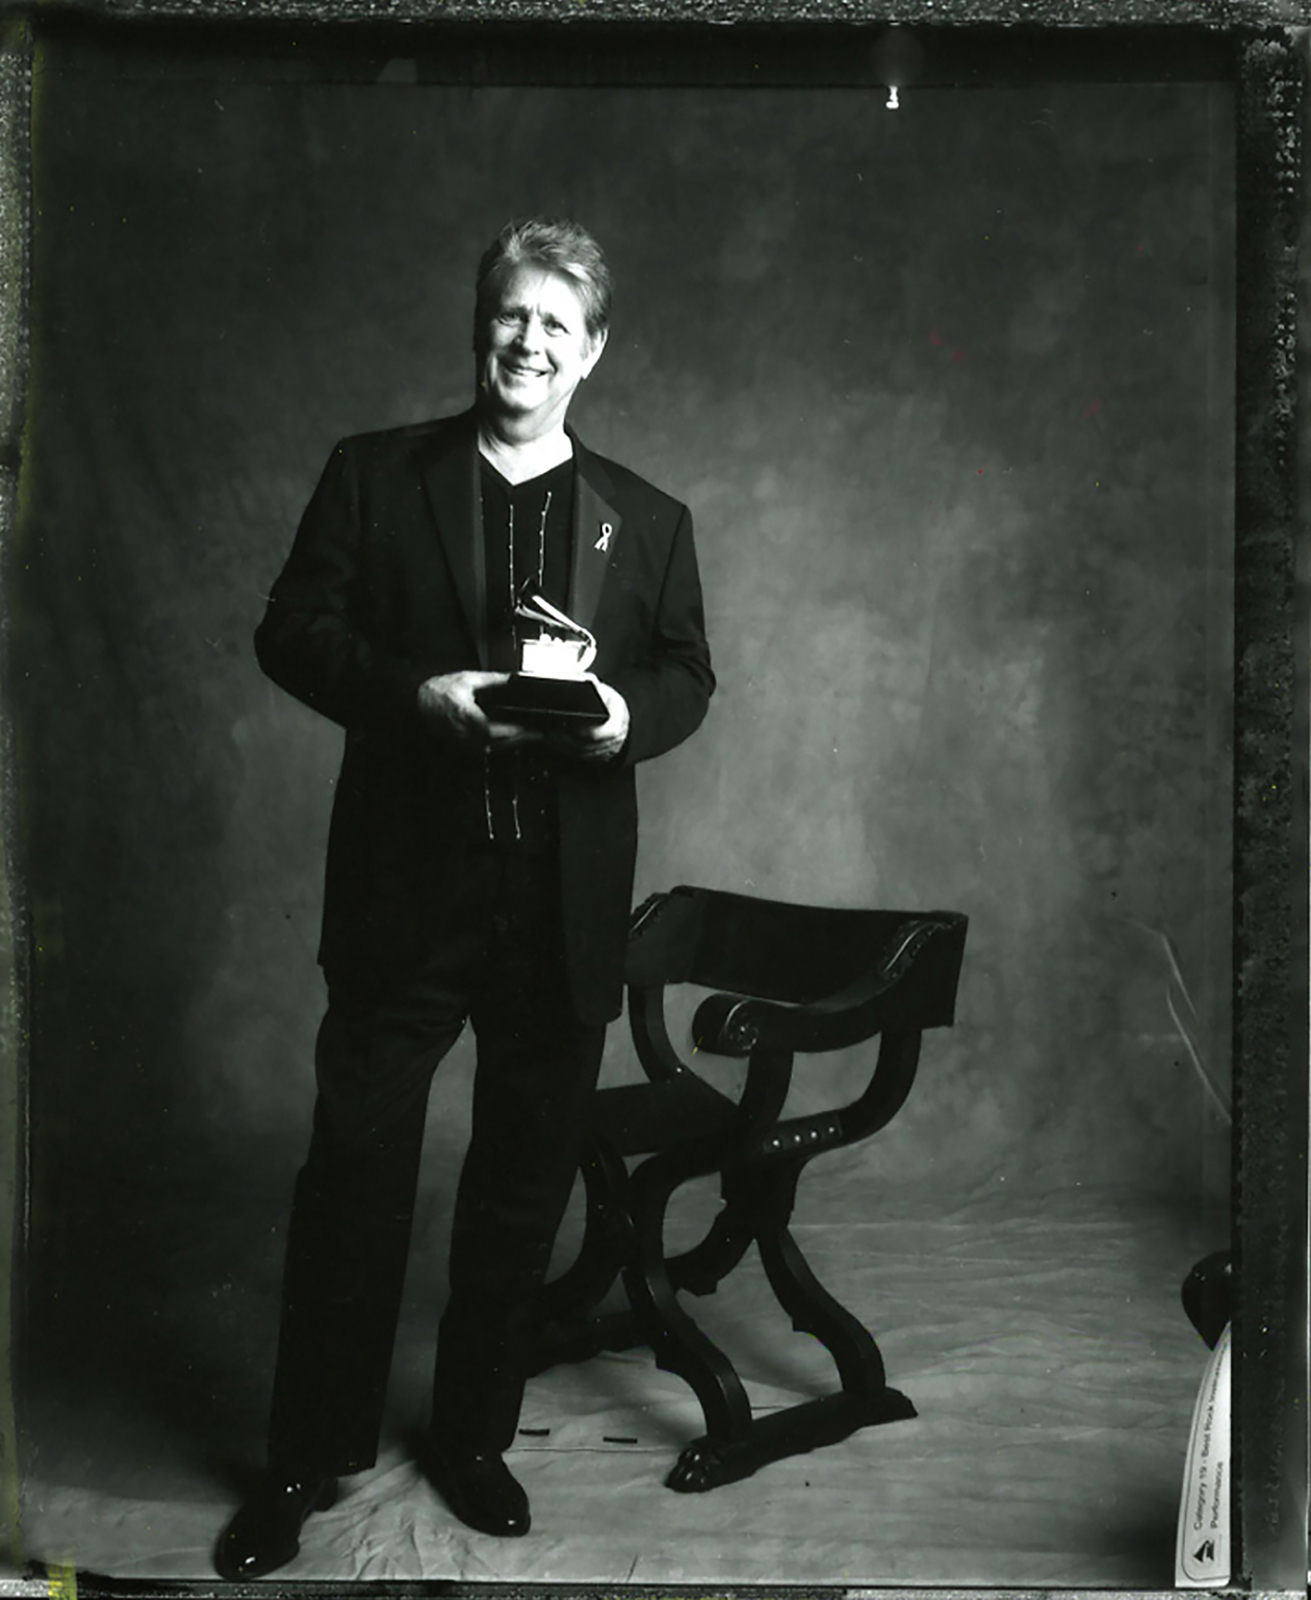 Primary image for Brian Wilson - Grammy Photo photographed by Danny Clinch